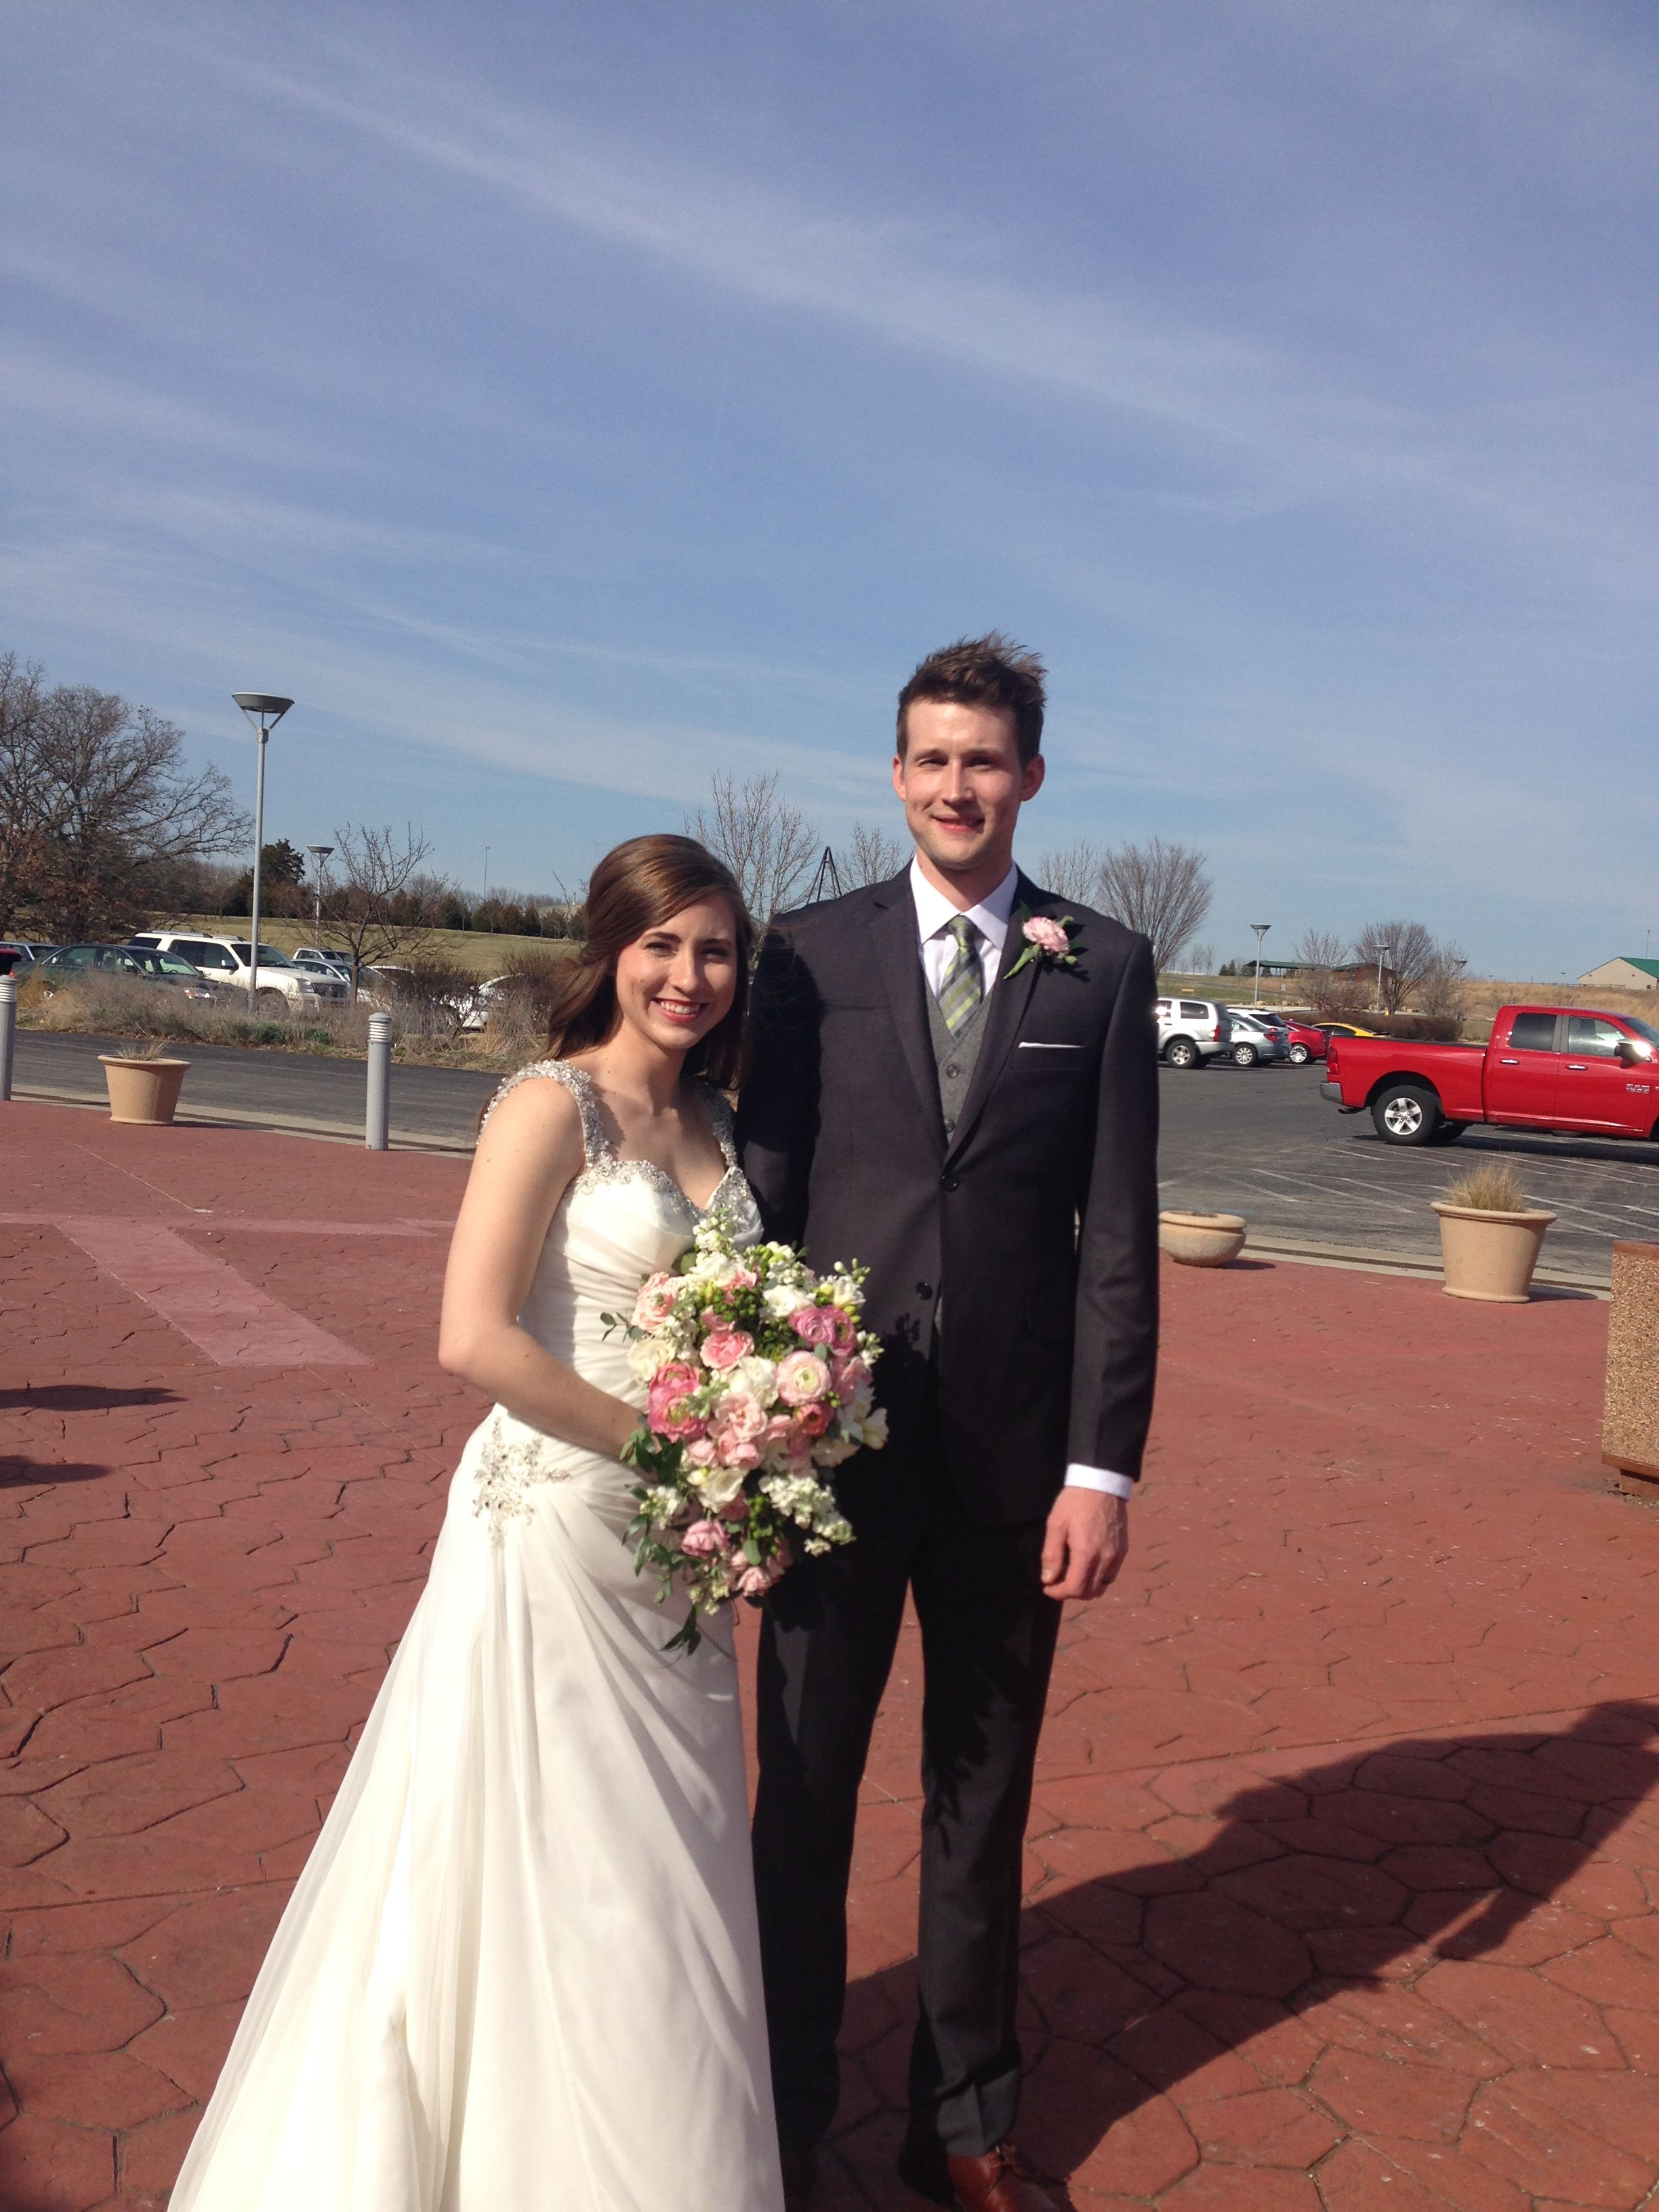 Congrats to Chris and Katie who were married at #QuailRidgeLodge on 3-21-15